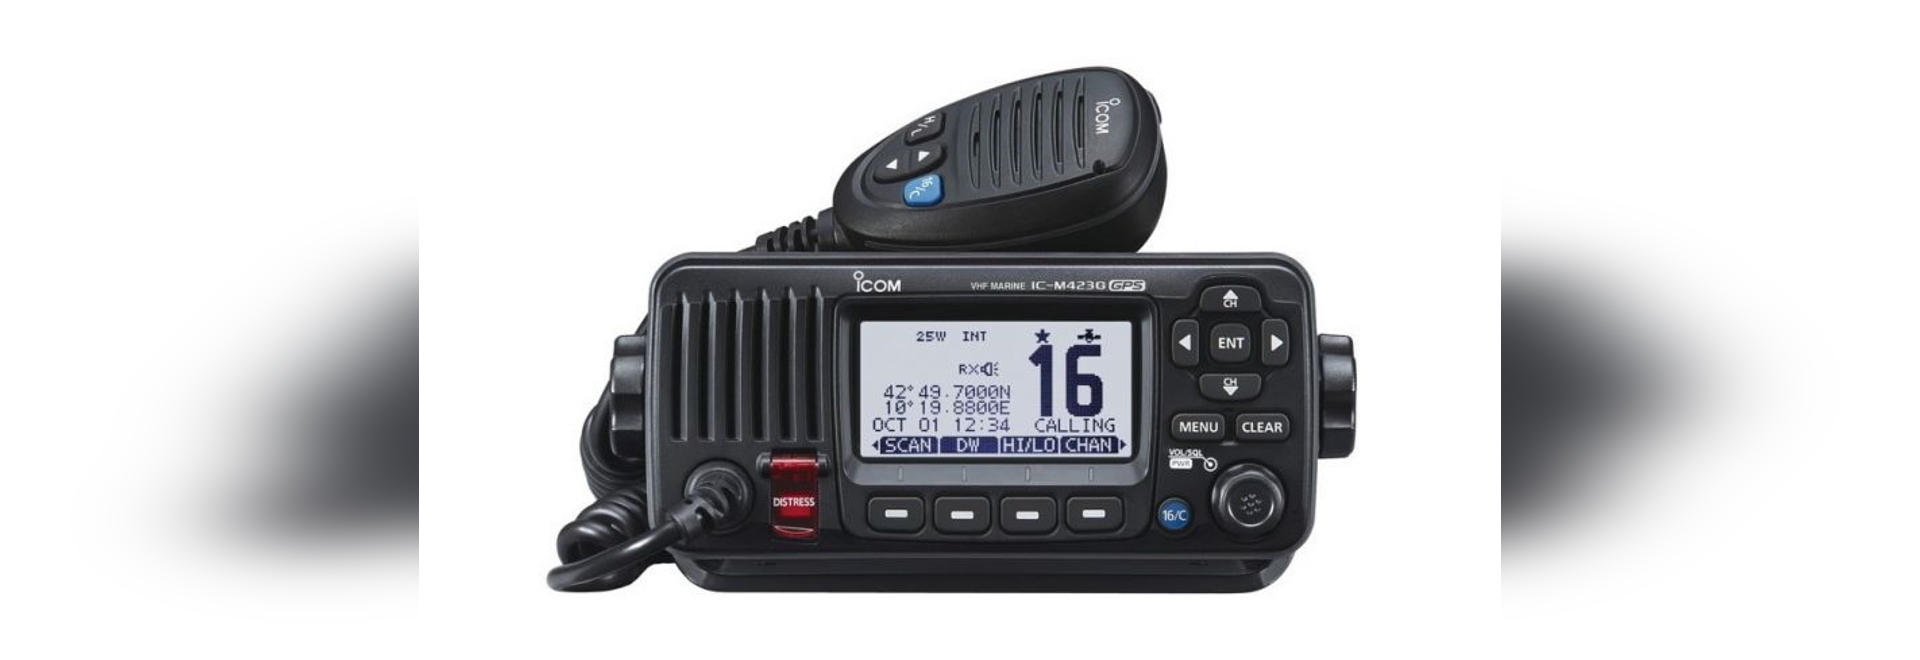 Icom's IC-M423GE and the IC-M400BBE feature an integrated GPS and an external GPS